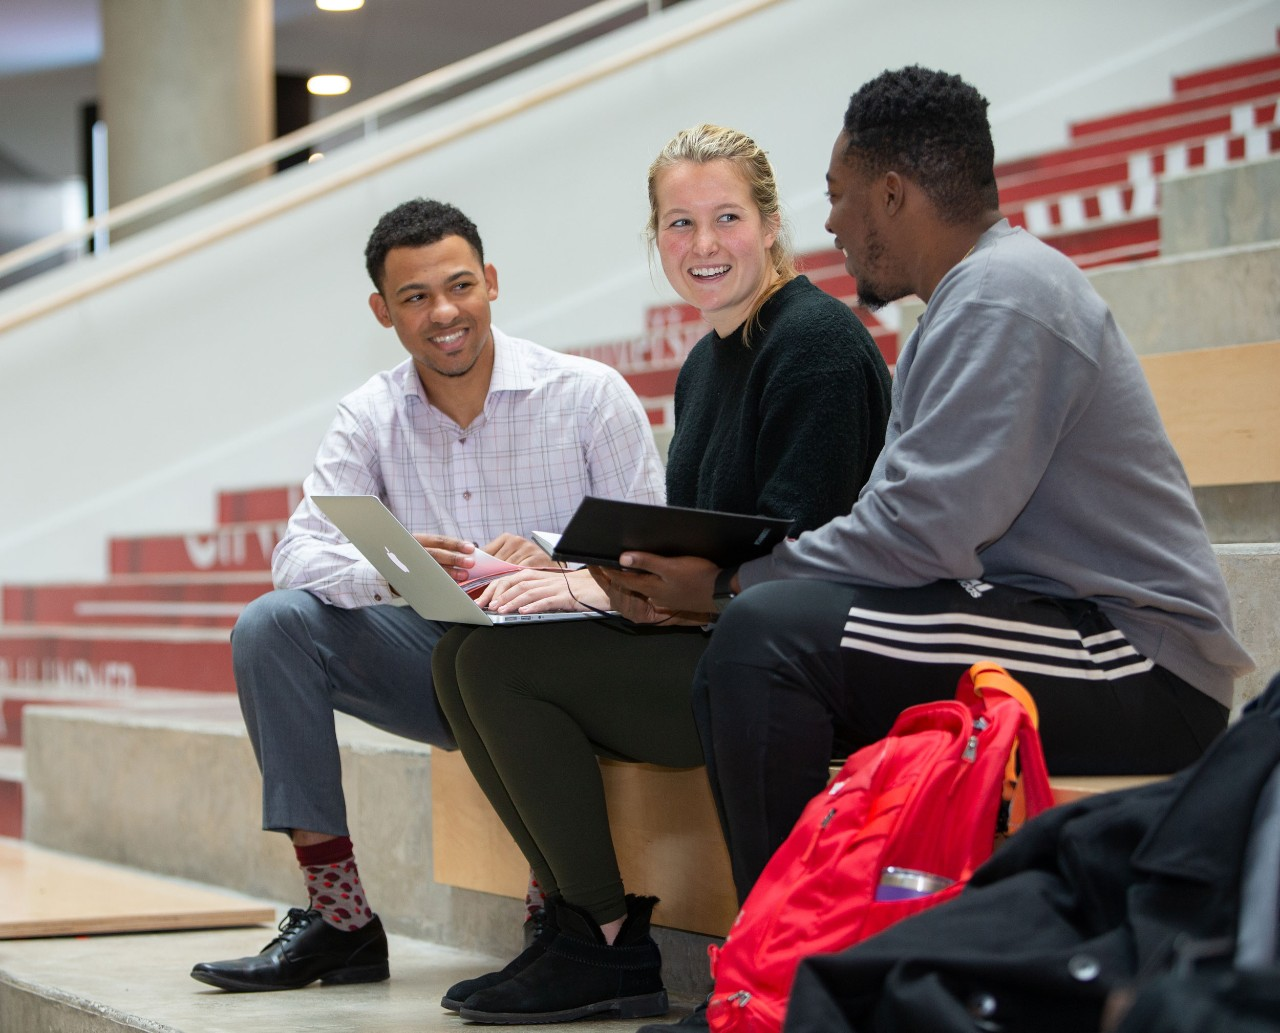 A female student wearing a black sweater sits between two male students on the steps of the Lindner atrium wearing casual clothing and talking